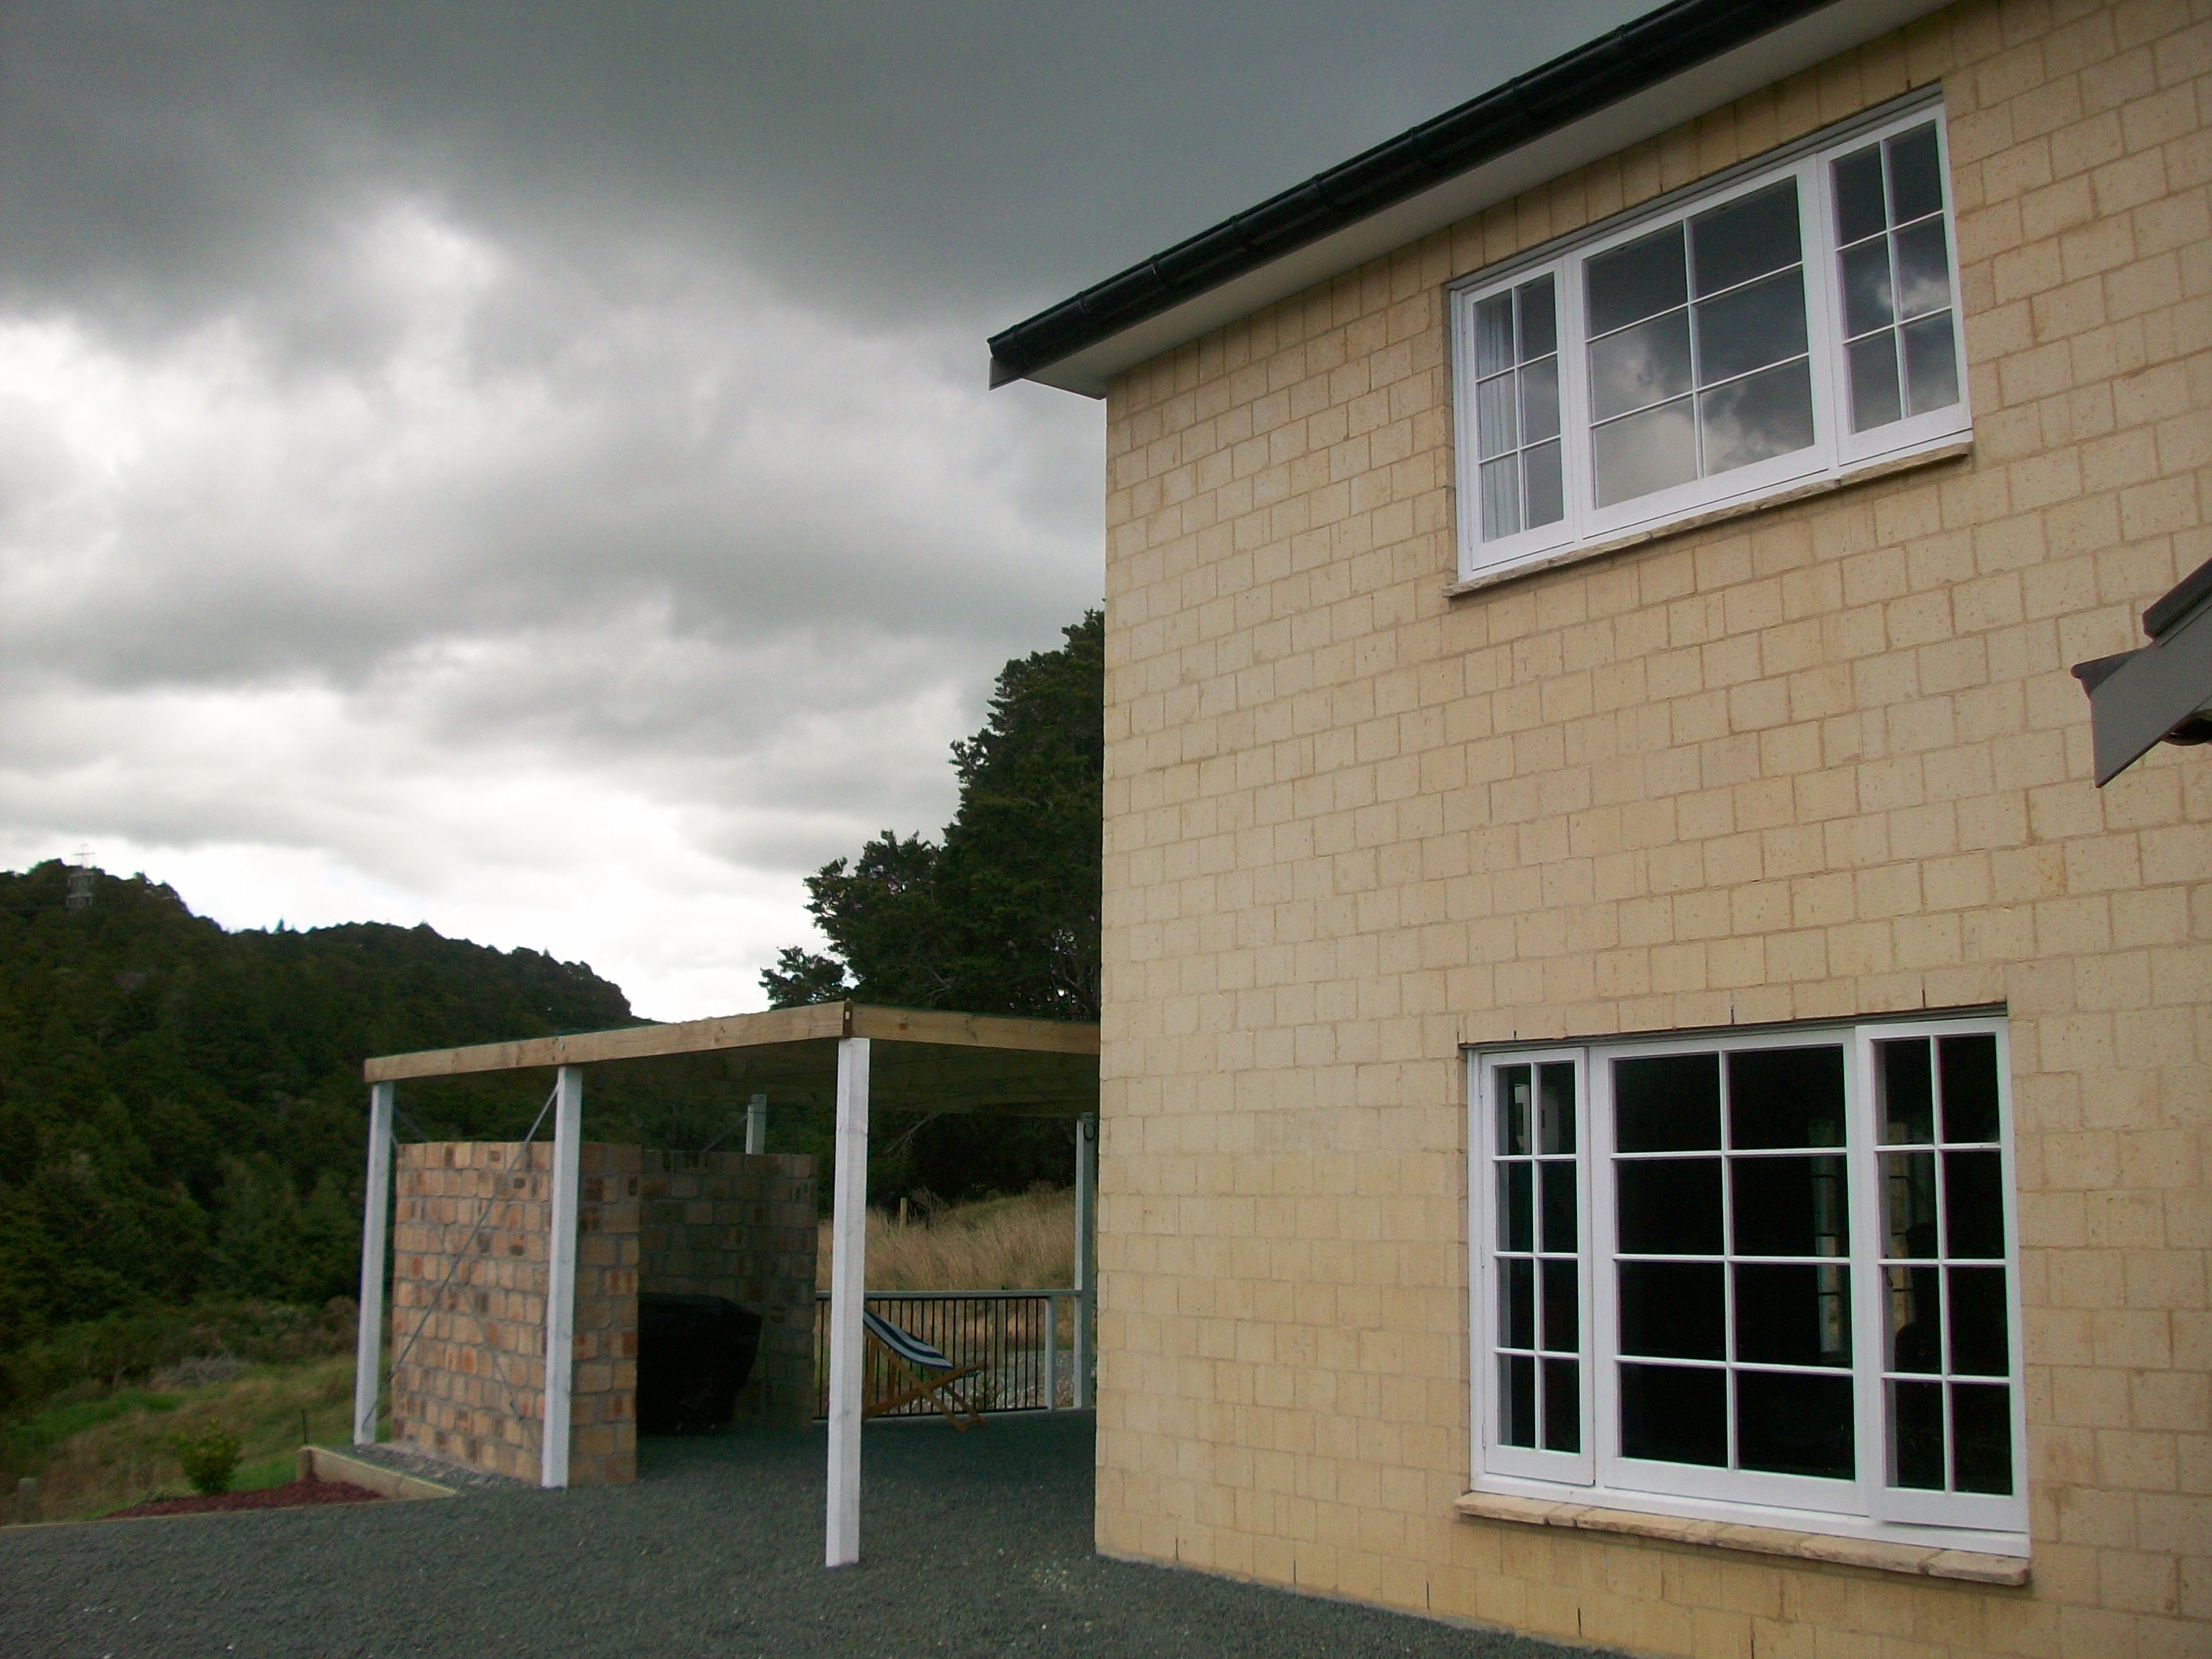 Corner of House with BBQ area showing